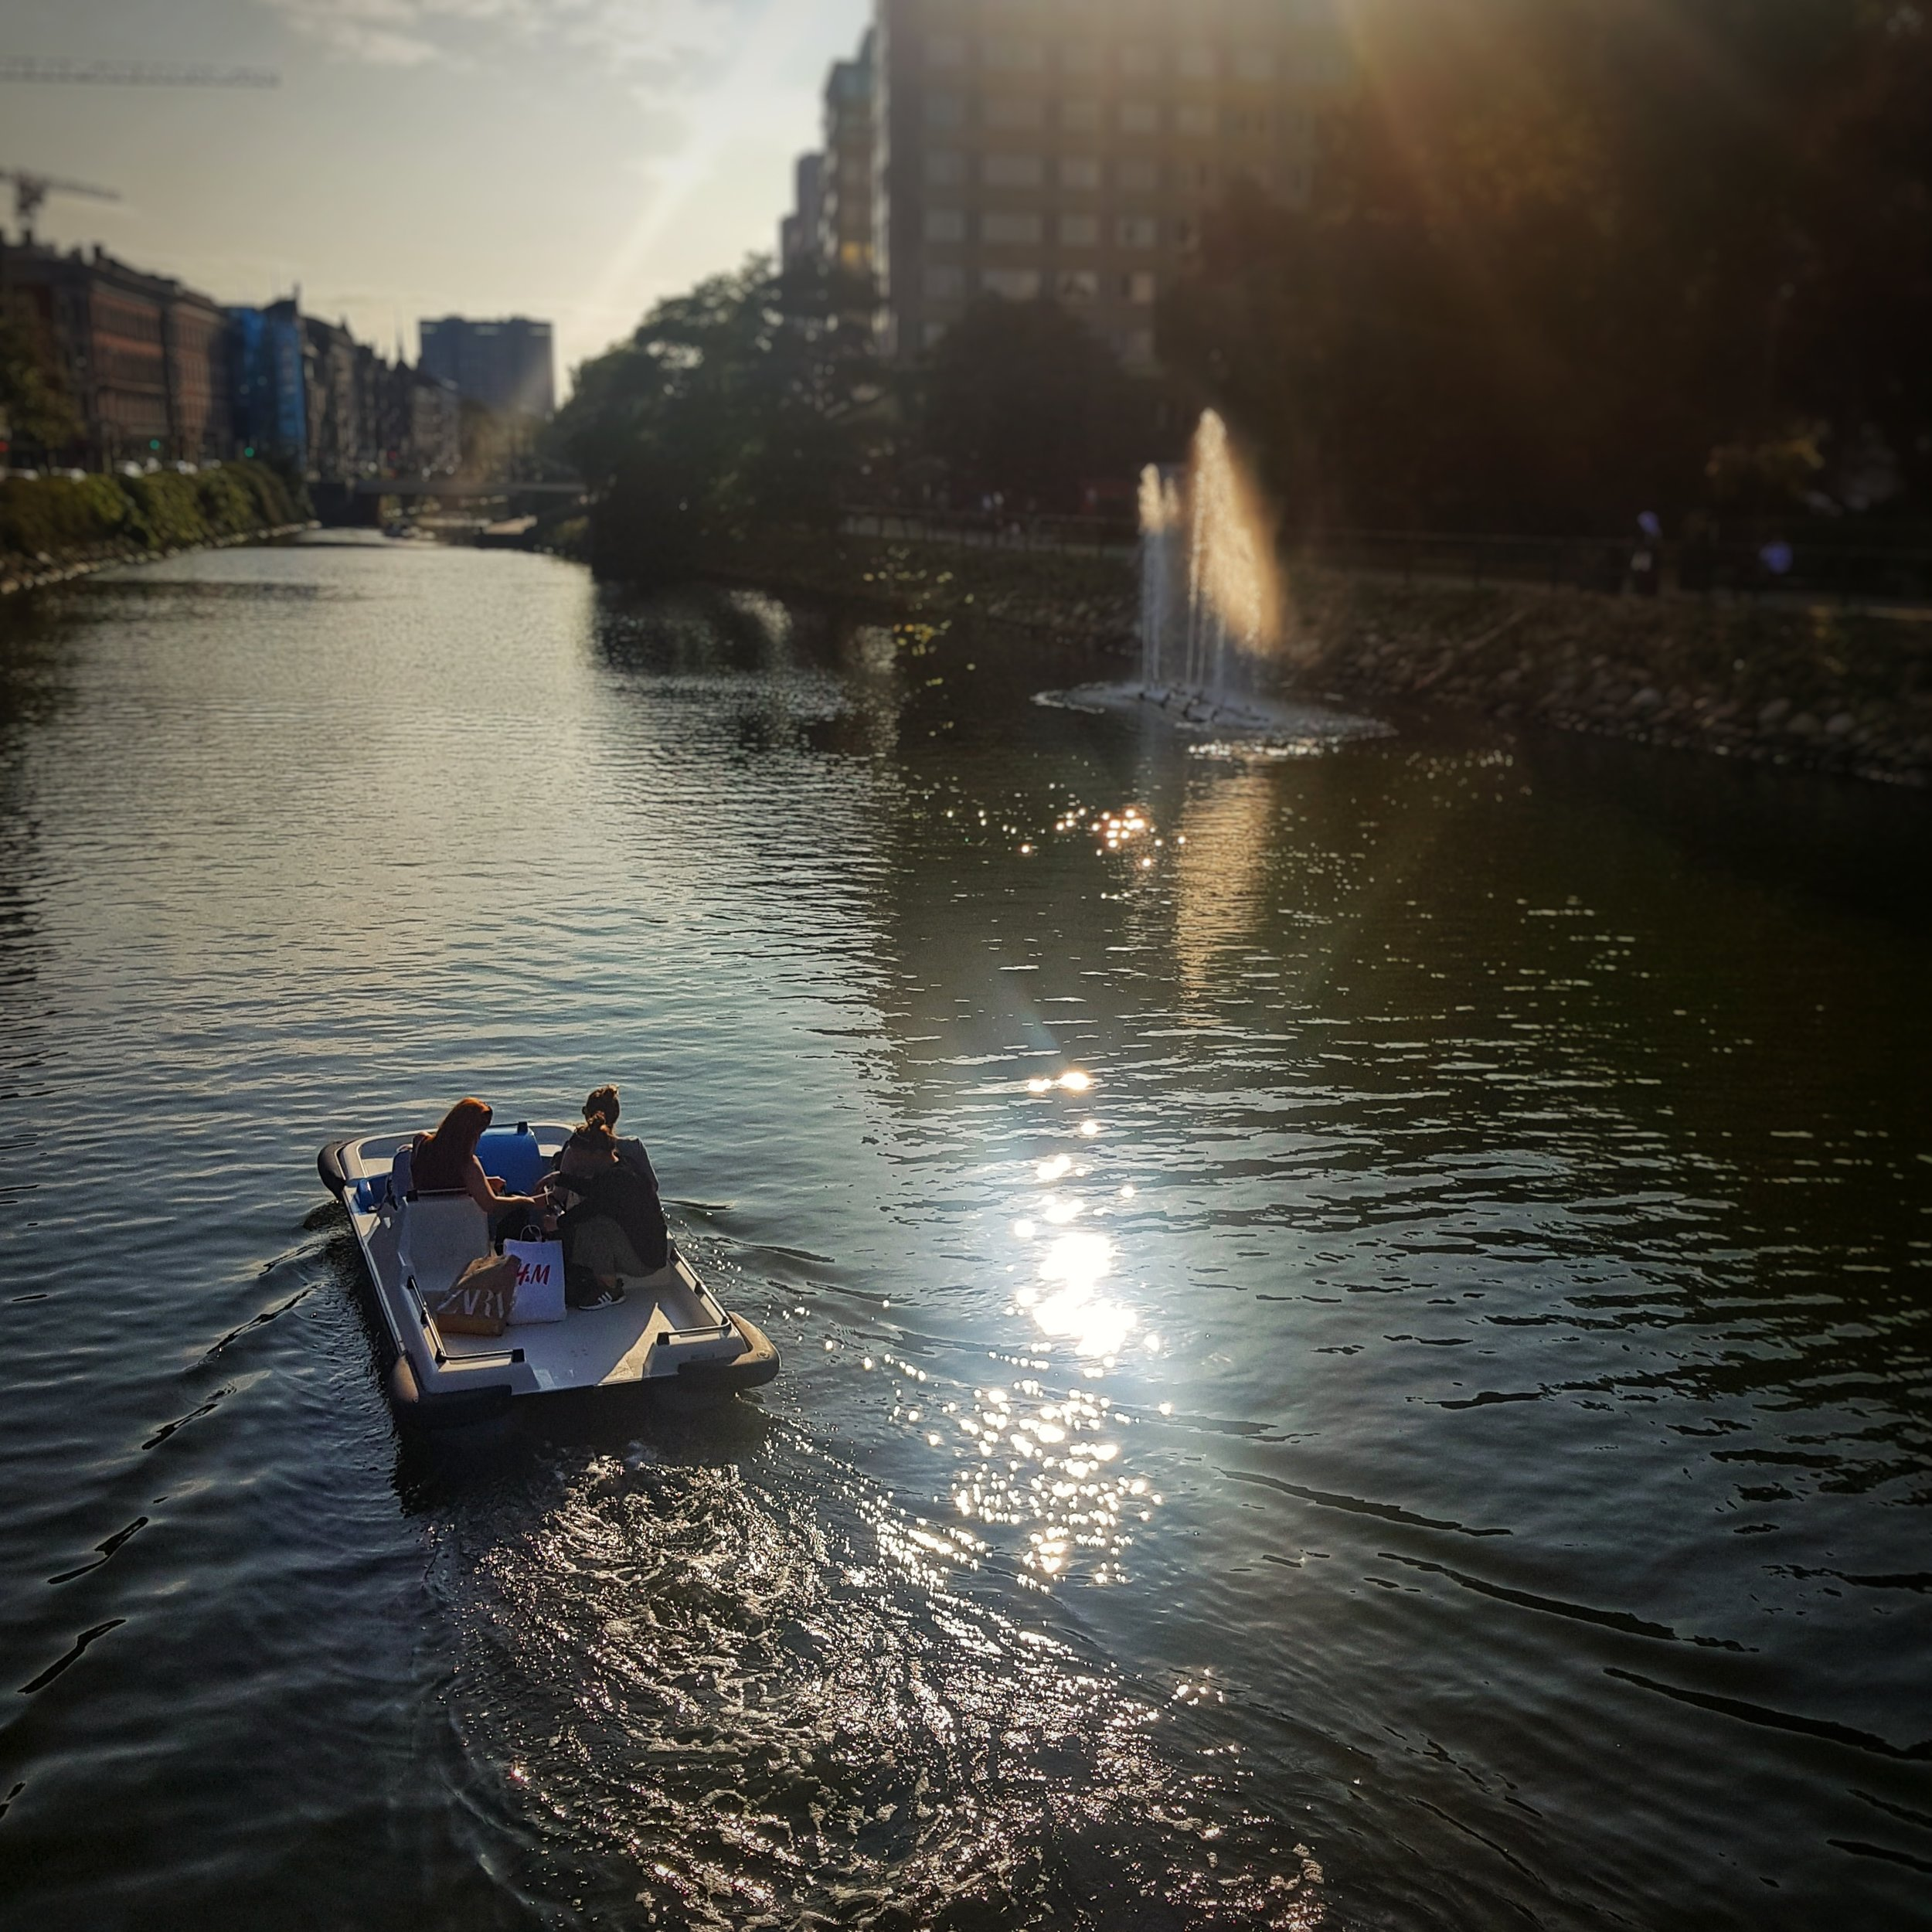 Day 219 - August 7: Canal Ride